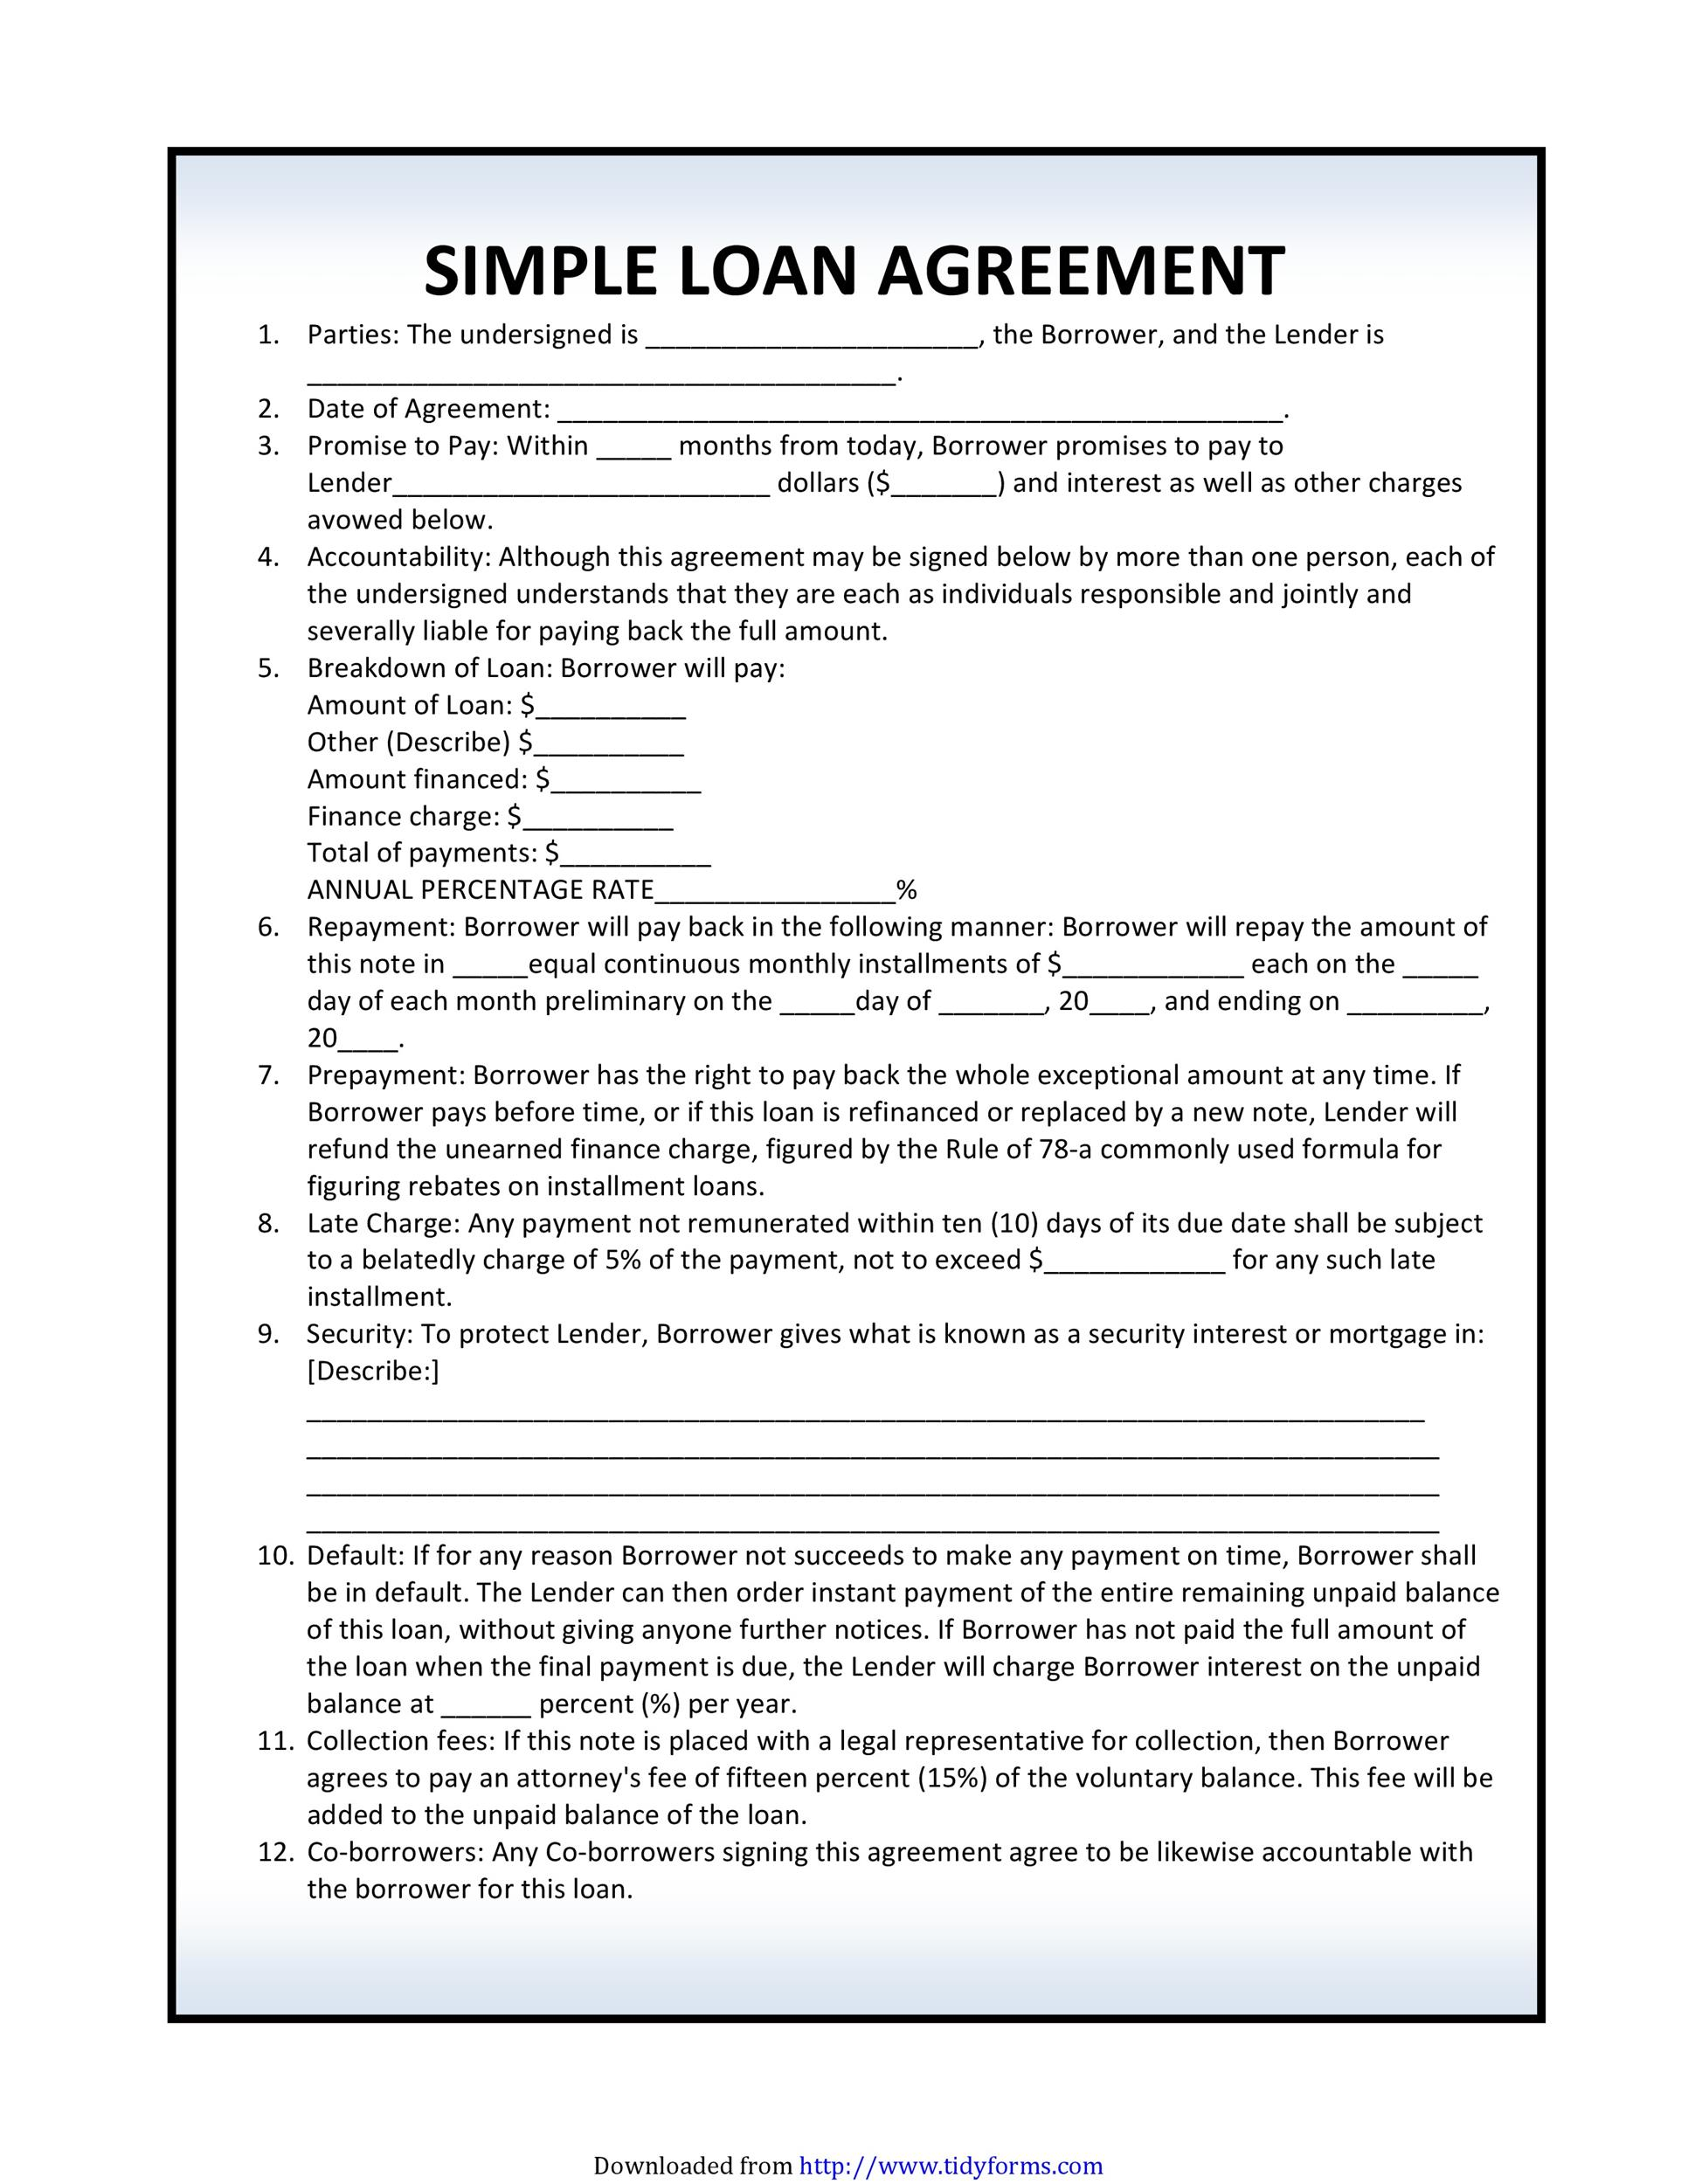 loan agreement template 40  Free Loan Agreement Templates [Word